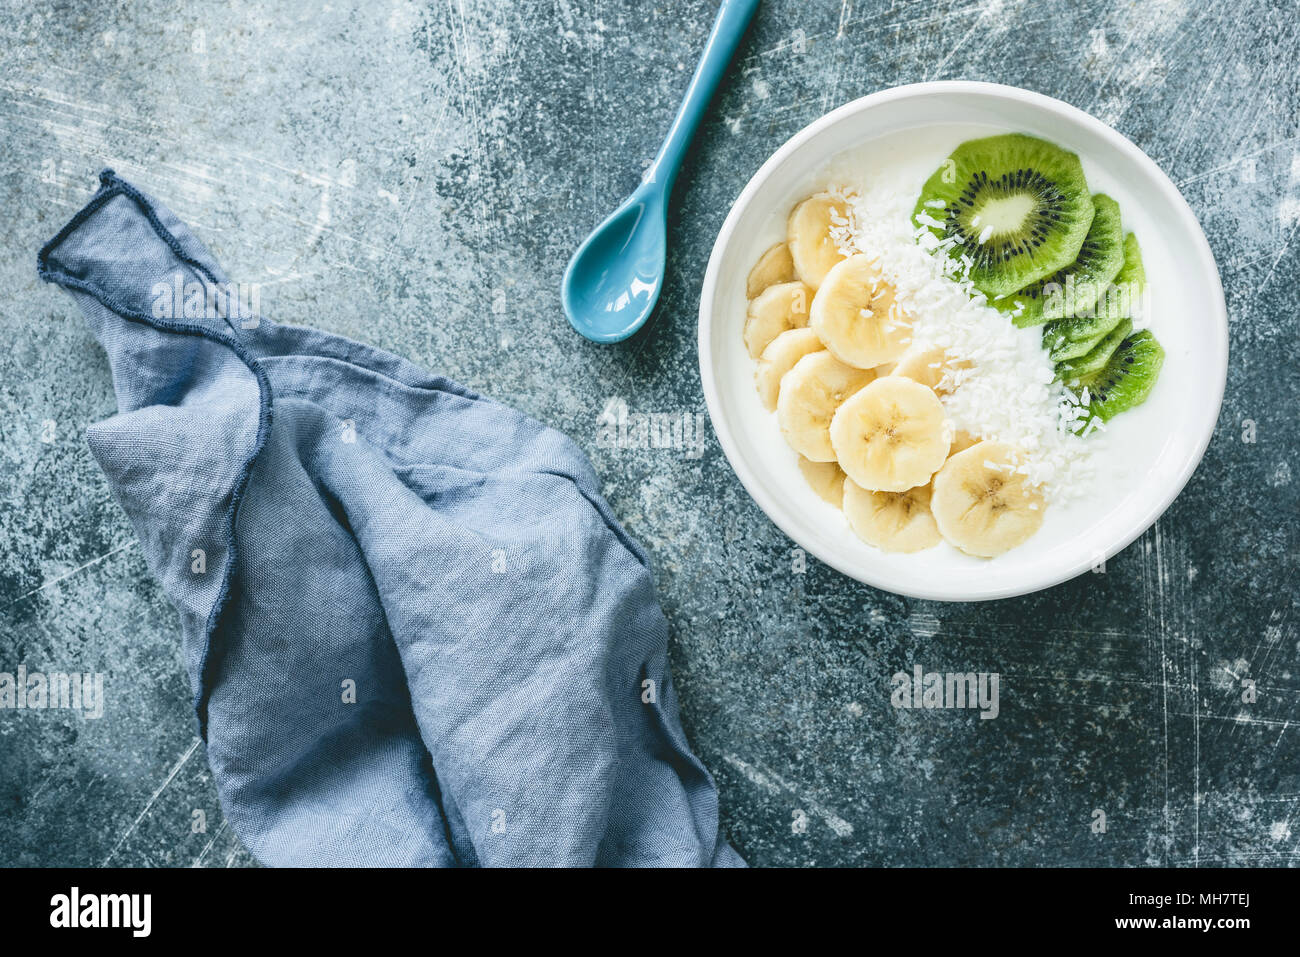 Yogurt with banana, kiwi and coconut bowl. Vegan yogurt with fruits. Healthy eating, dieting, fitness, healthy lifestyle concept. Table top view - Stock Image